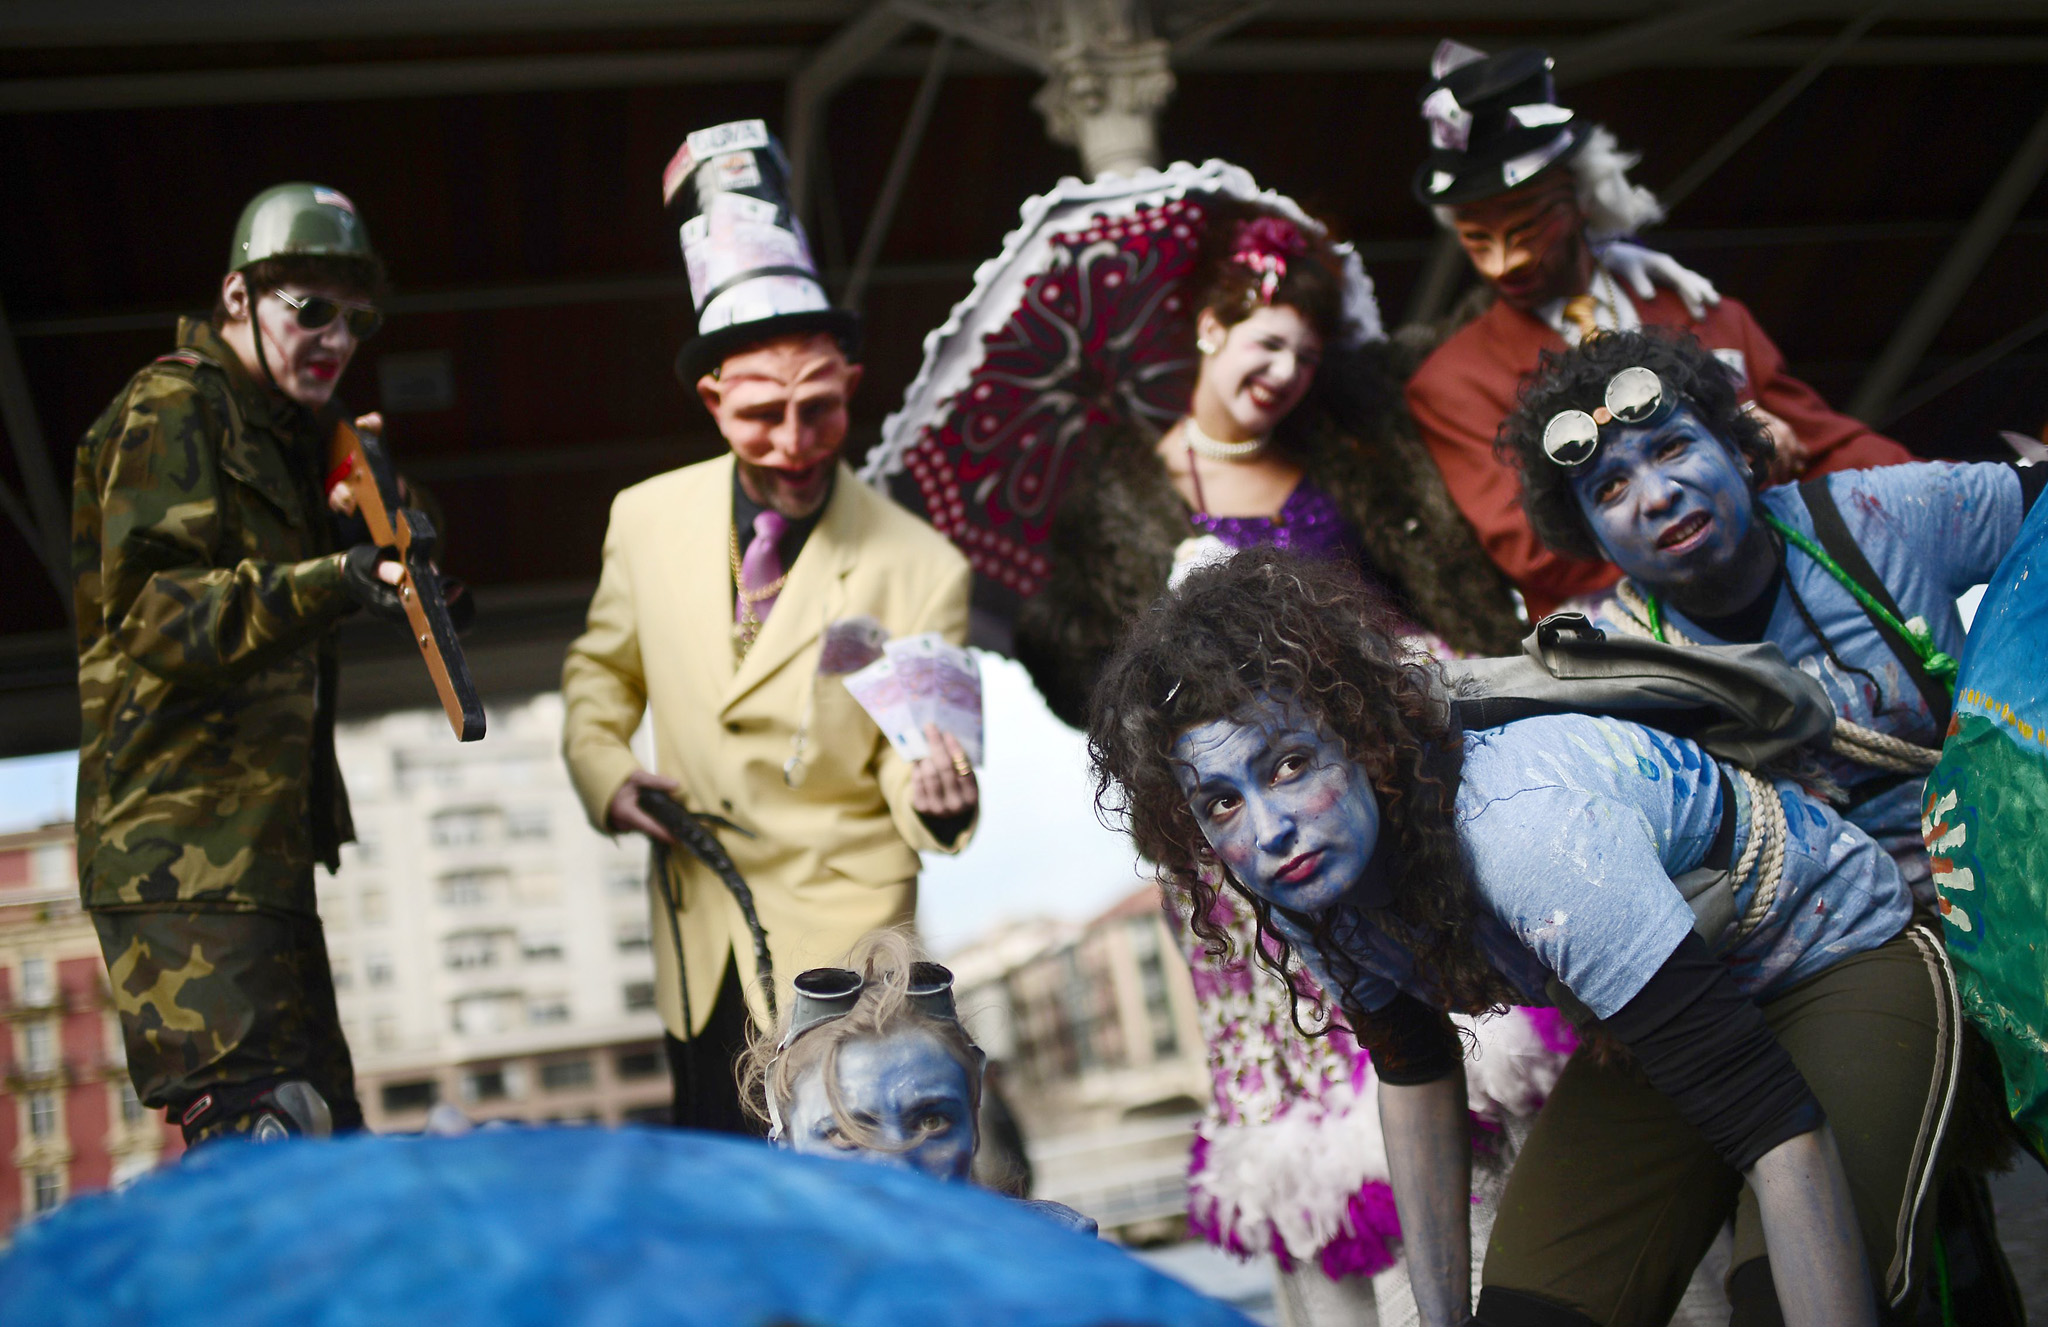 Actors take part in street theatre organized by the Coordinator of NGO's of the Basque Country in Bilbao...Actors take part in street theatre organized by the Coordinator of NGO's of the Basque Country in Bilbao December 19, 2013. The organization, an umbrella group for 84 Basque NGO's, performed Quien es Quien (Who's Who), an improvised theatrical piece, dressed as bankers, the wealthy and military personnel, handing out fake money to motorists and passers-by. The action was designed to draw attention to what the coordinator claims are the causes of poverty and inequality in the world. REUTERS/Vincent West (SPAIN - Tags: POLITICS CIVIL UNREST)